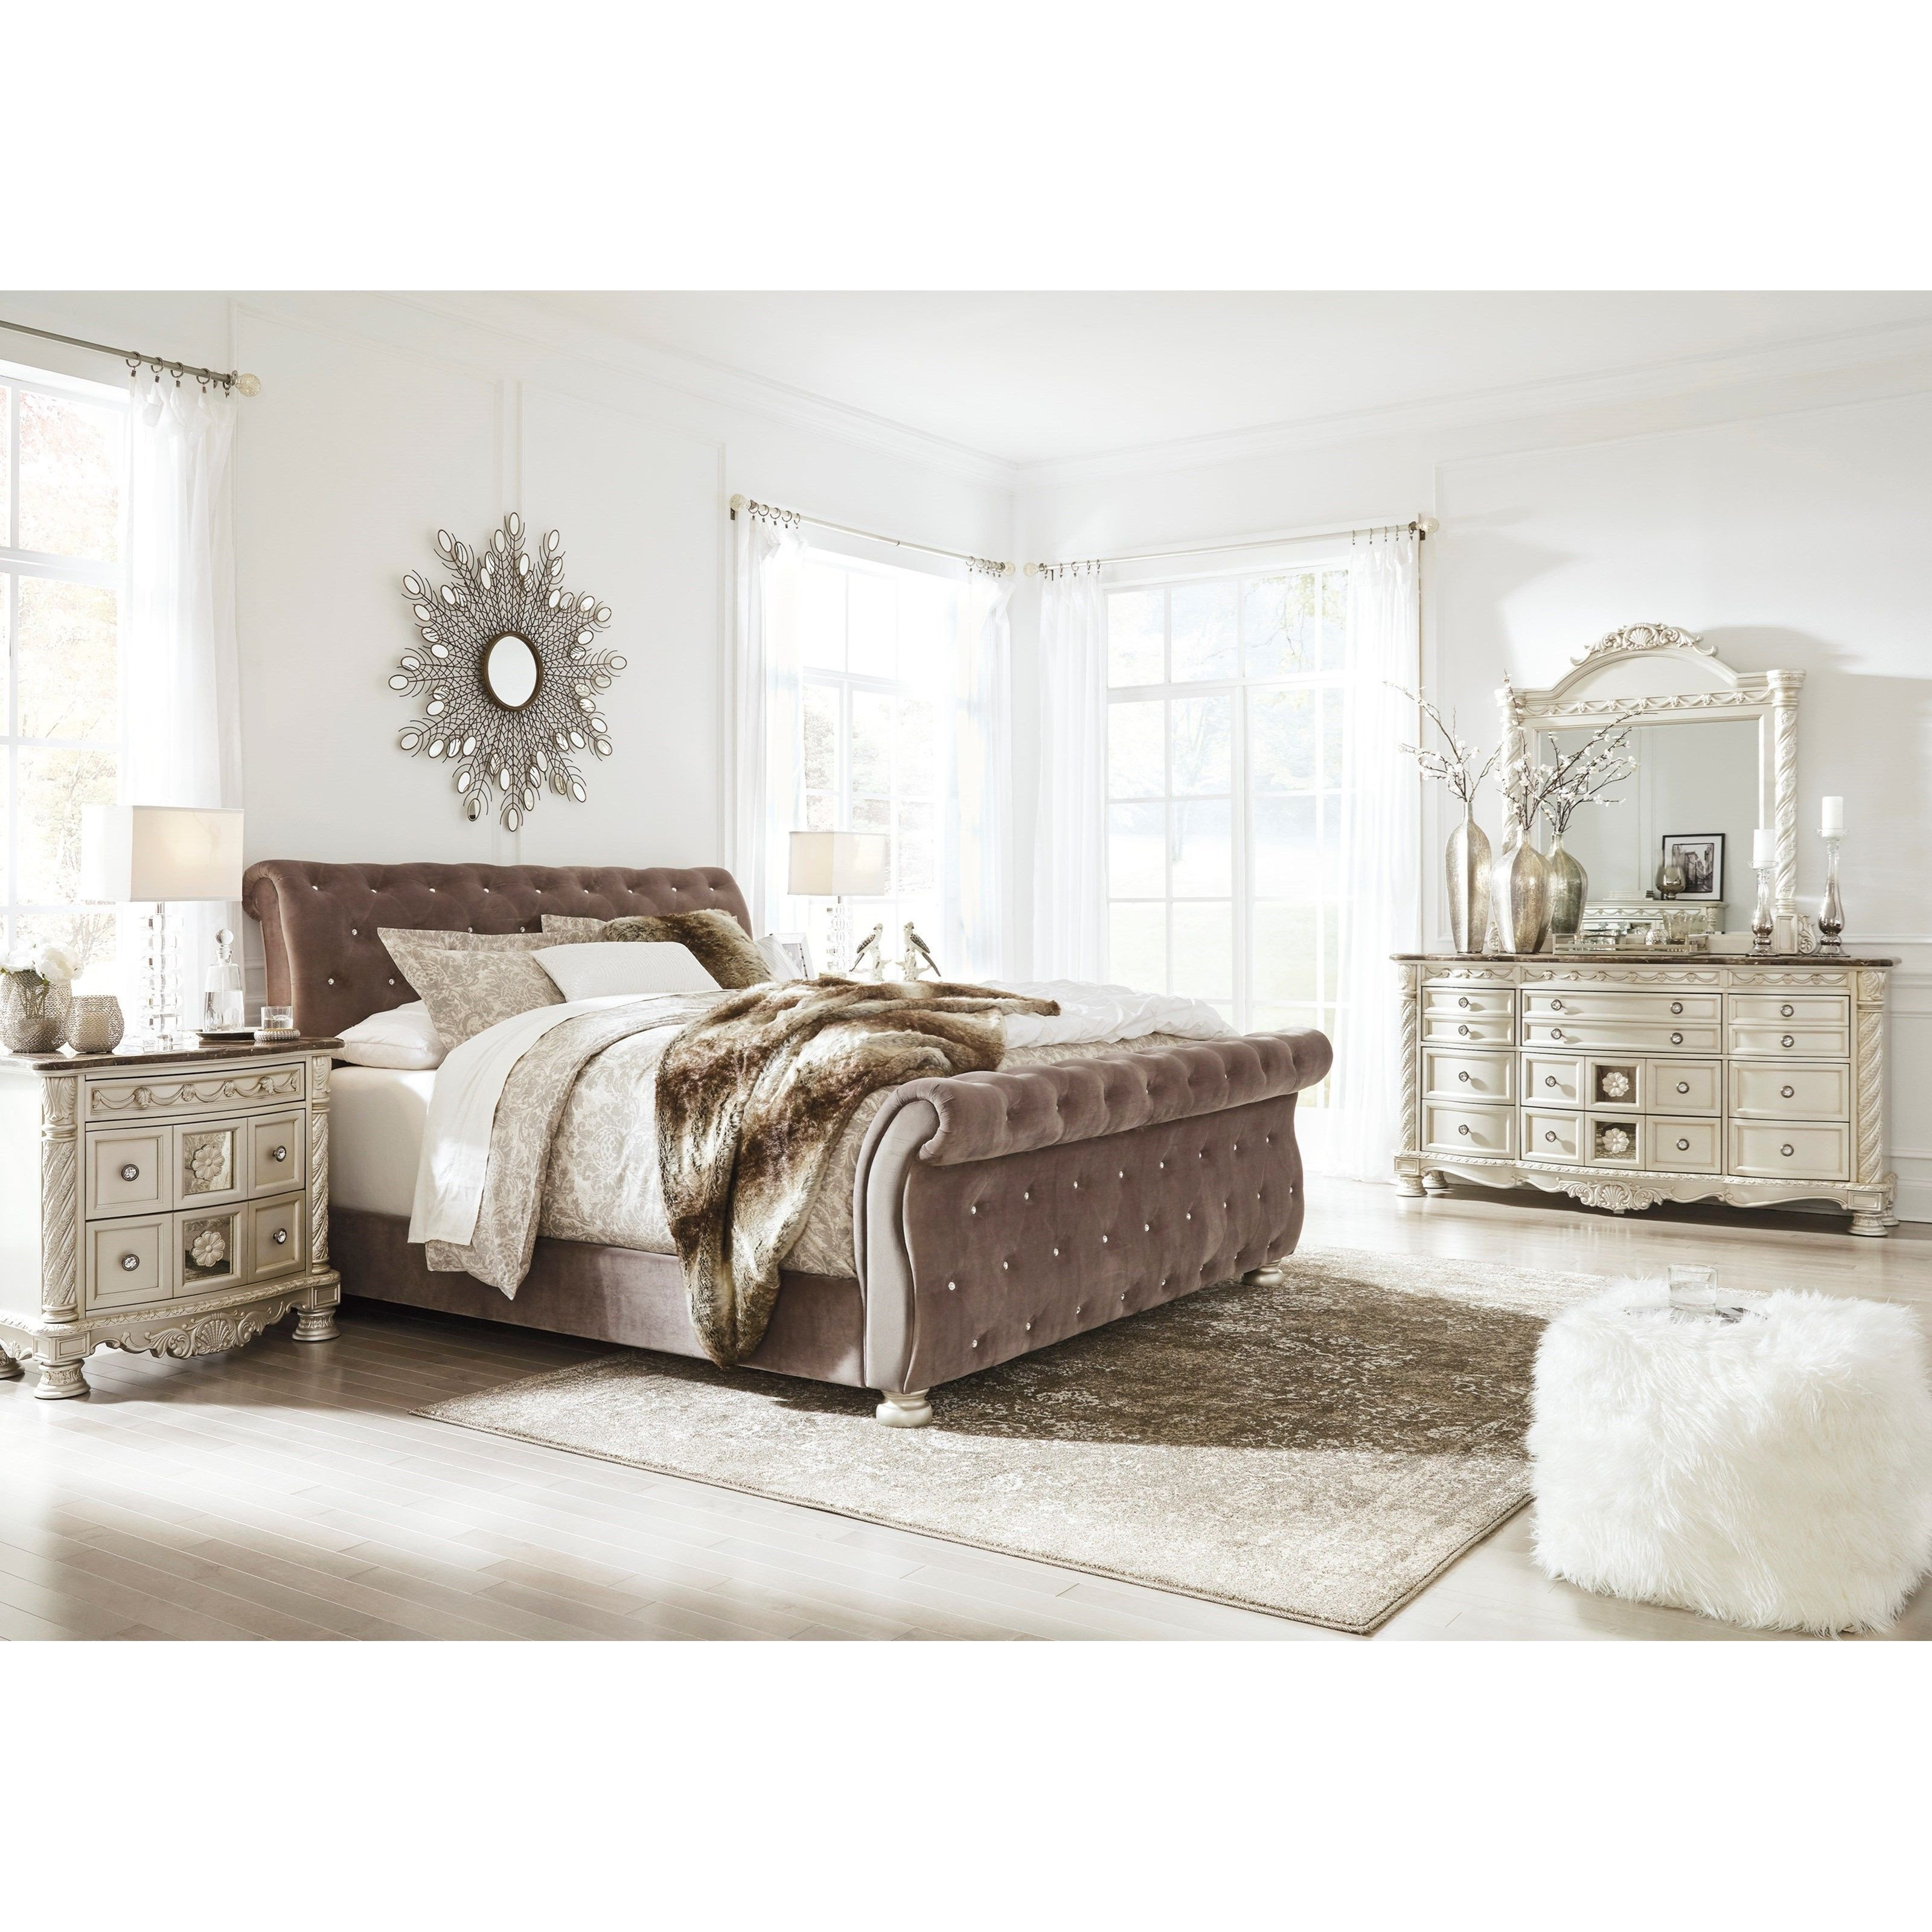 Monte Carlo Bedroom Set Unique Cassimore King Bedroom Group by Signature Design by ashley